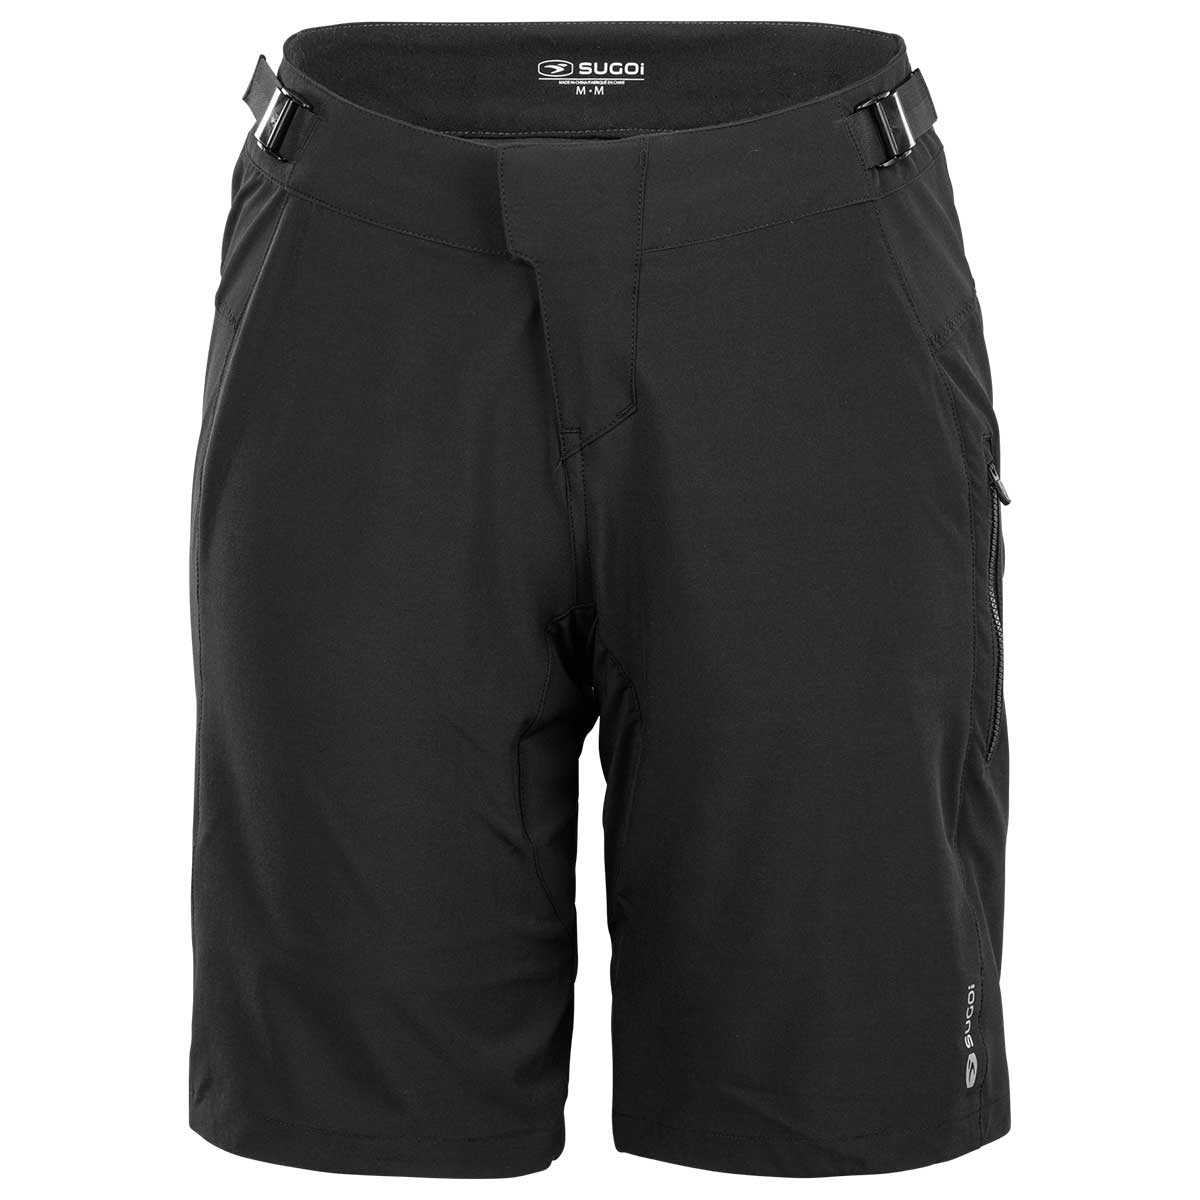 Sugoi women's Trail Short with Liner in Black